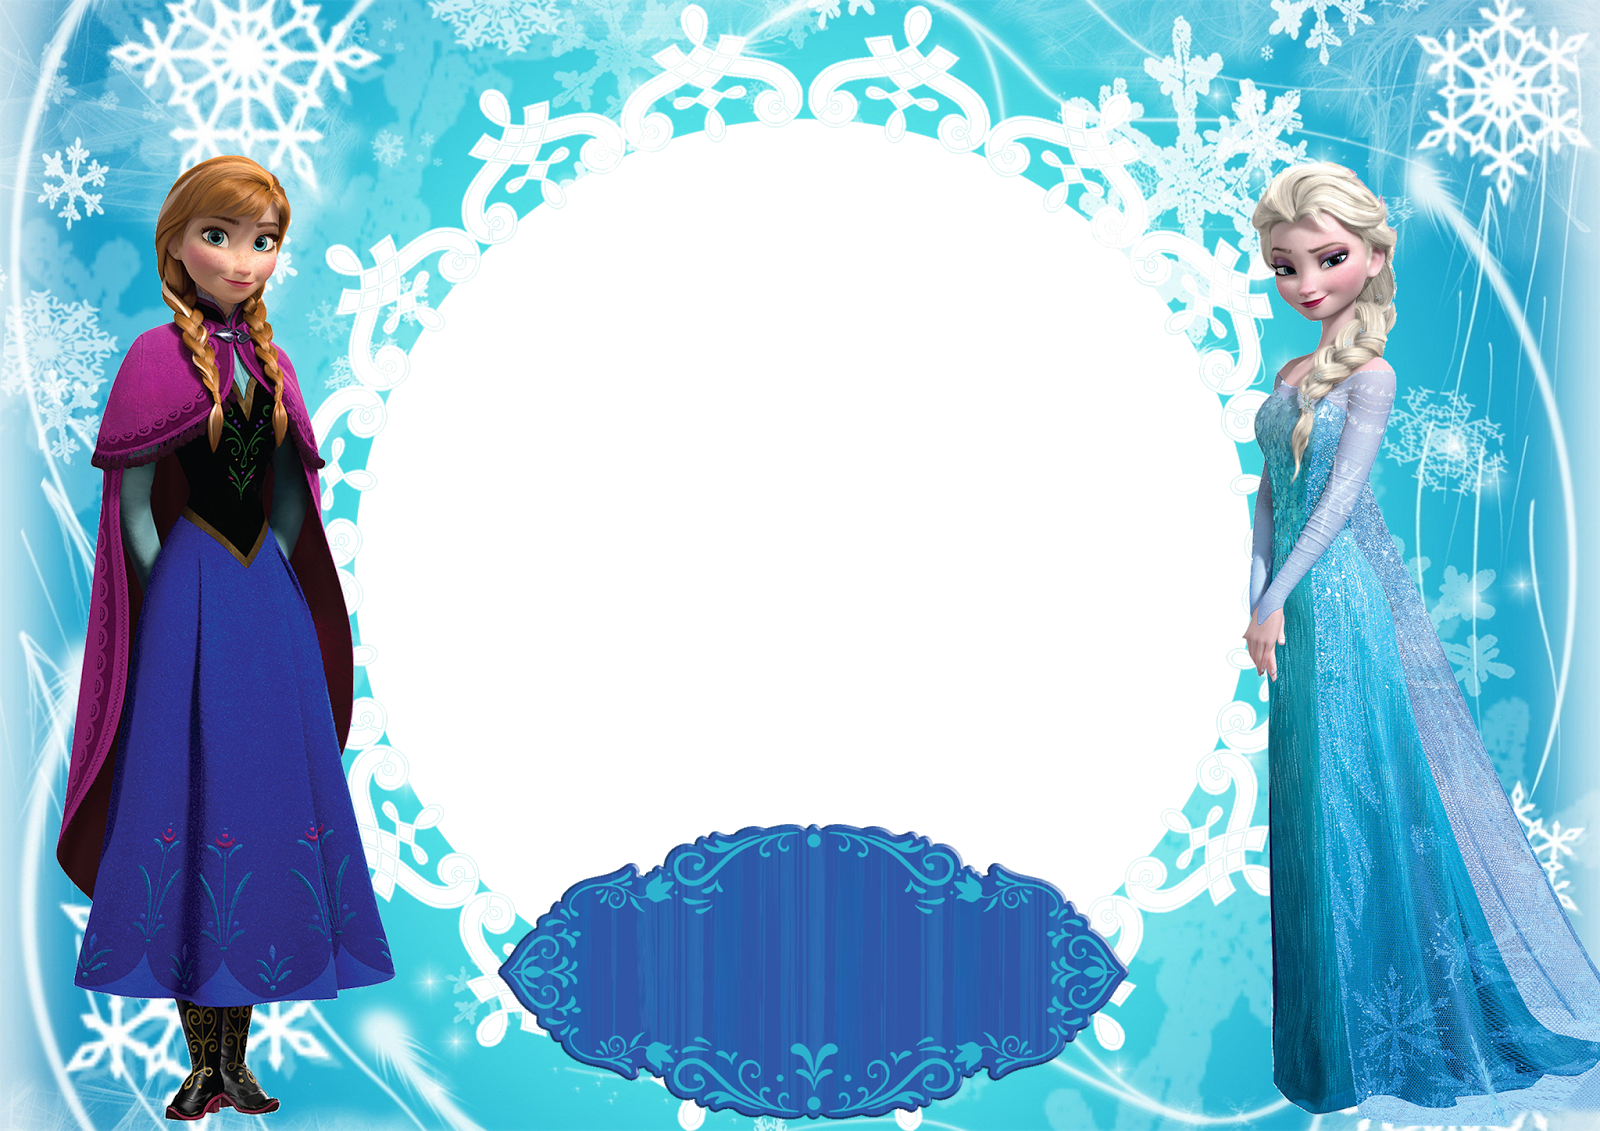 frozen castle frame png icons and backgrounds #27787